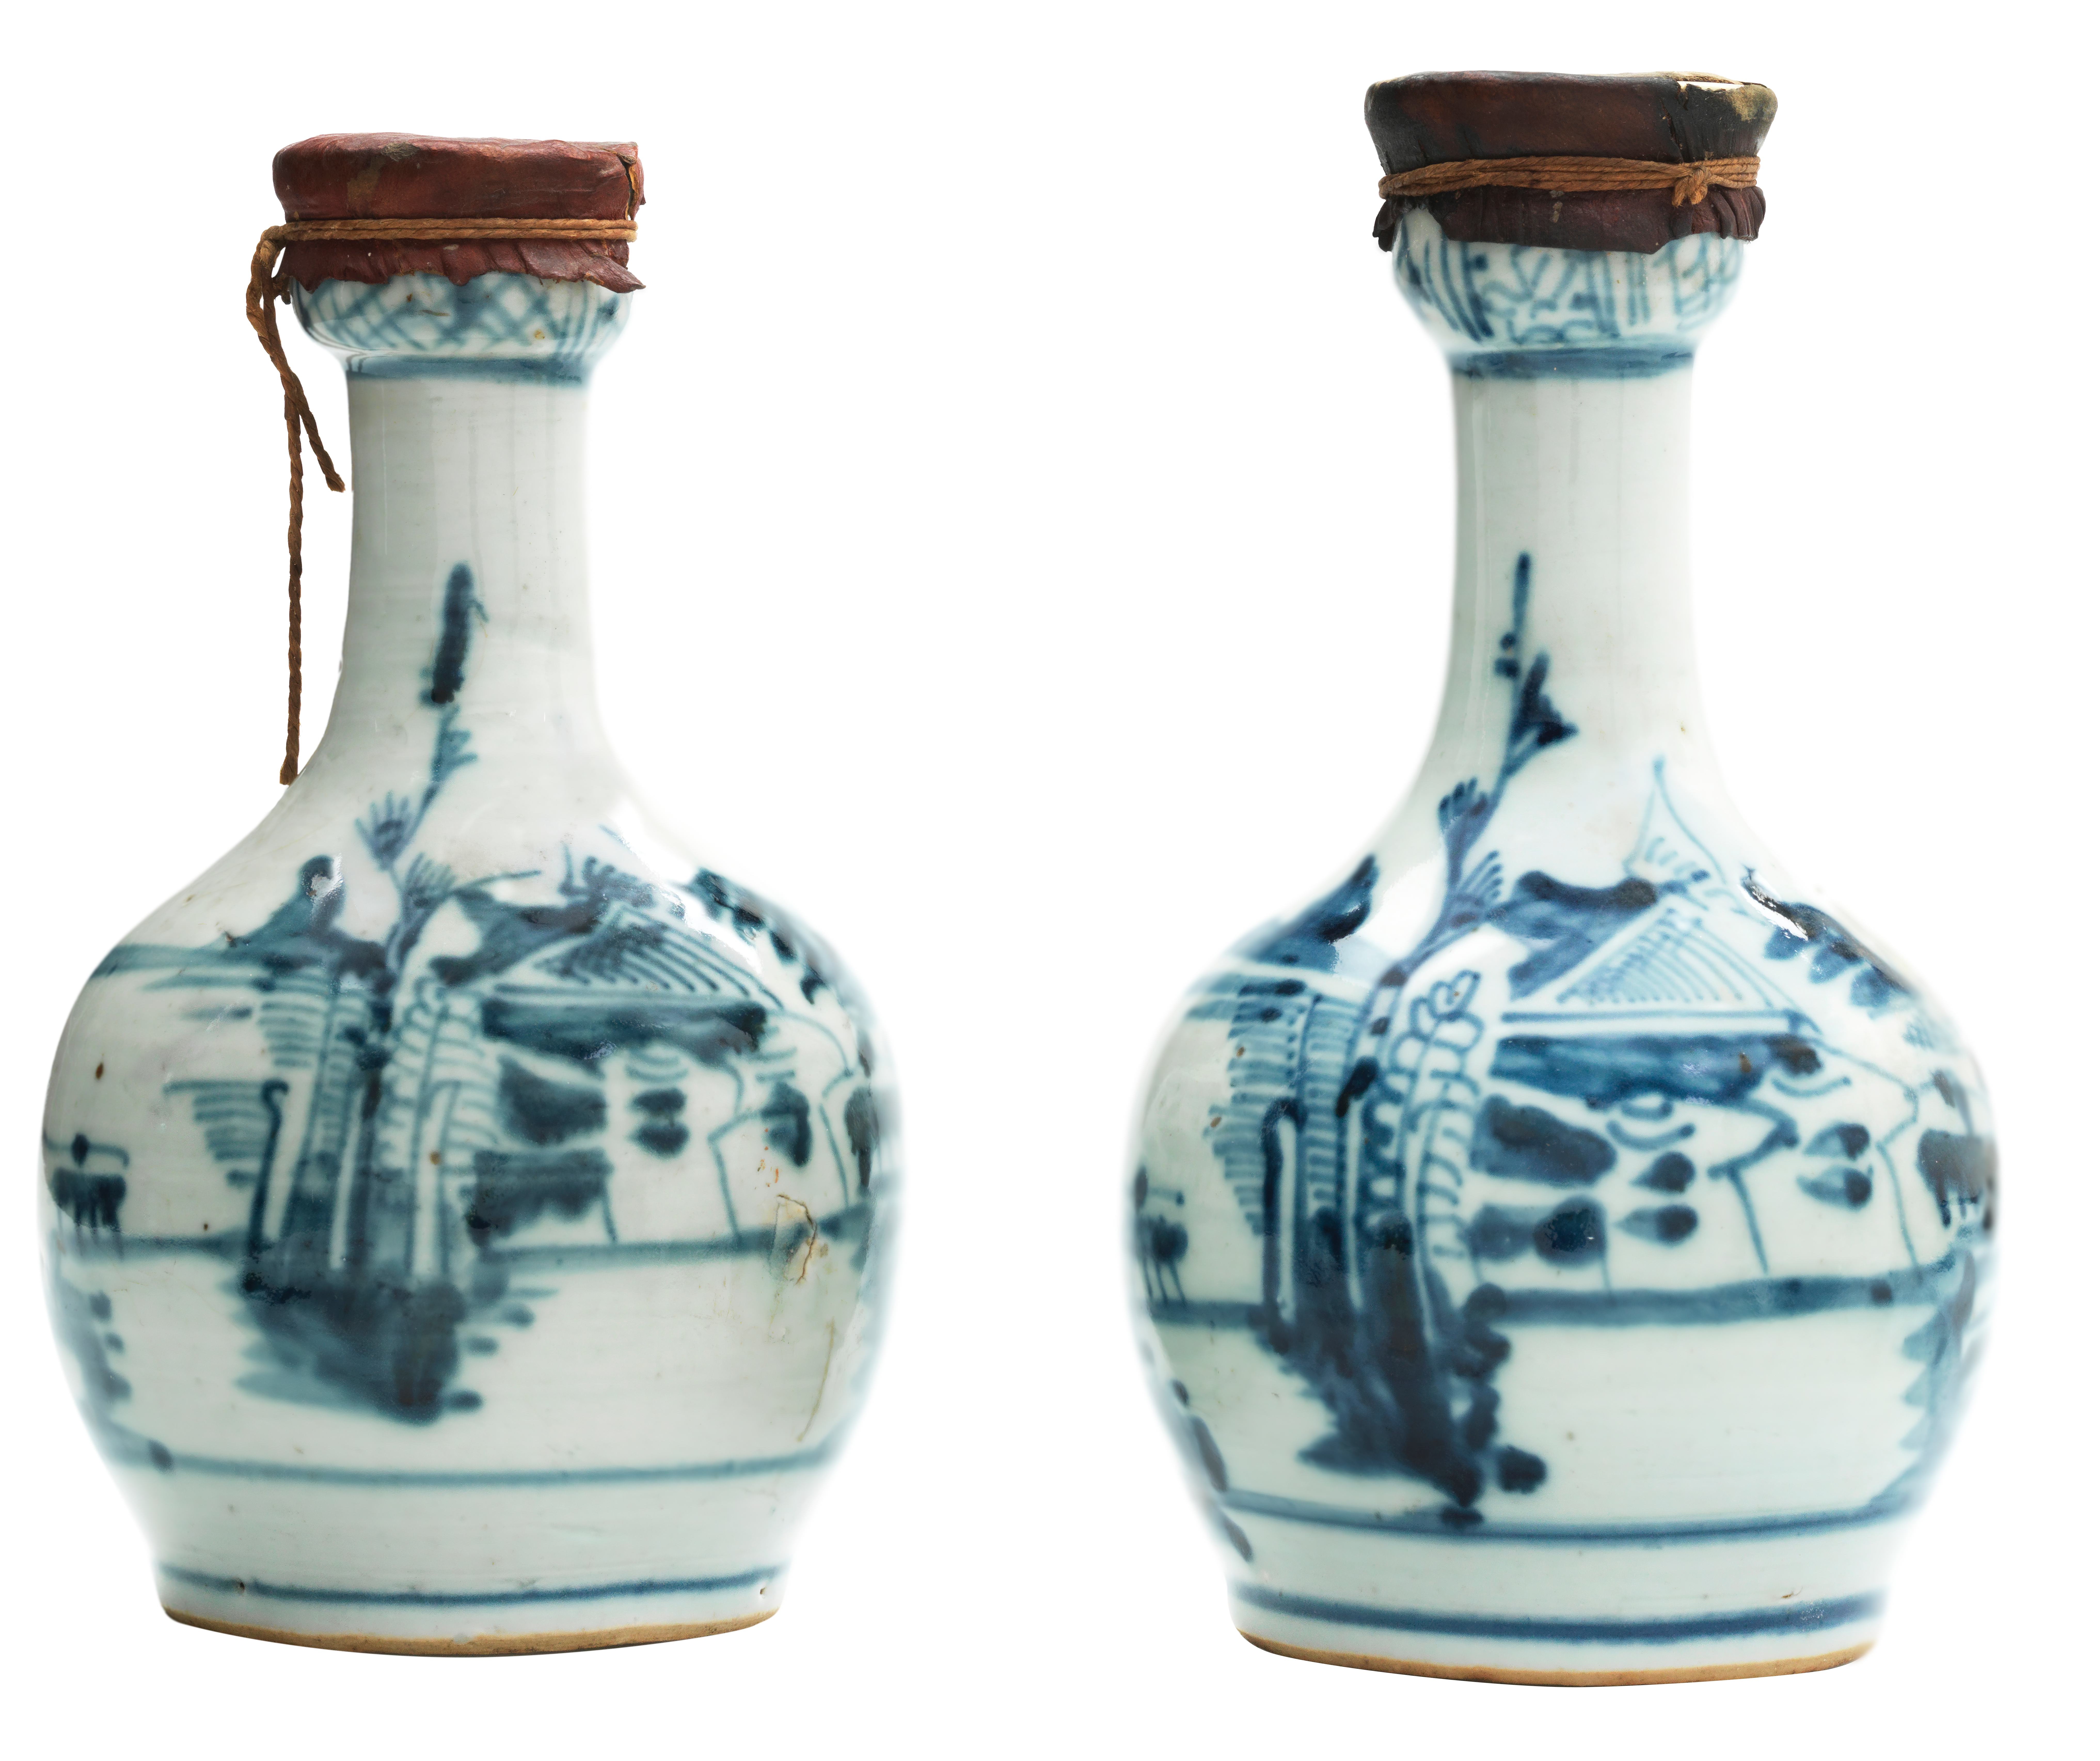 Two blue-and-white porcelain sealed 'Zamzam' water bottles